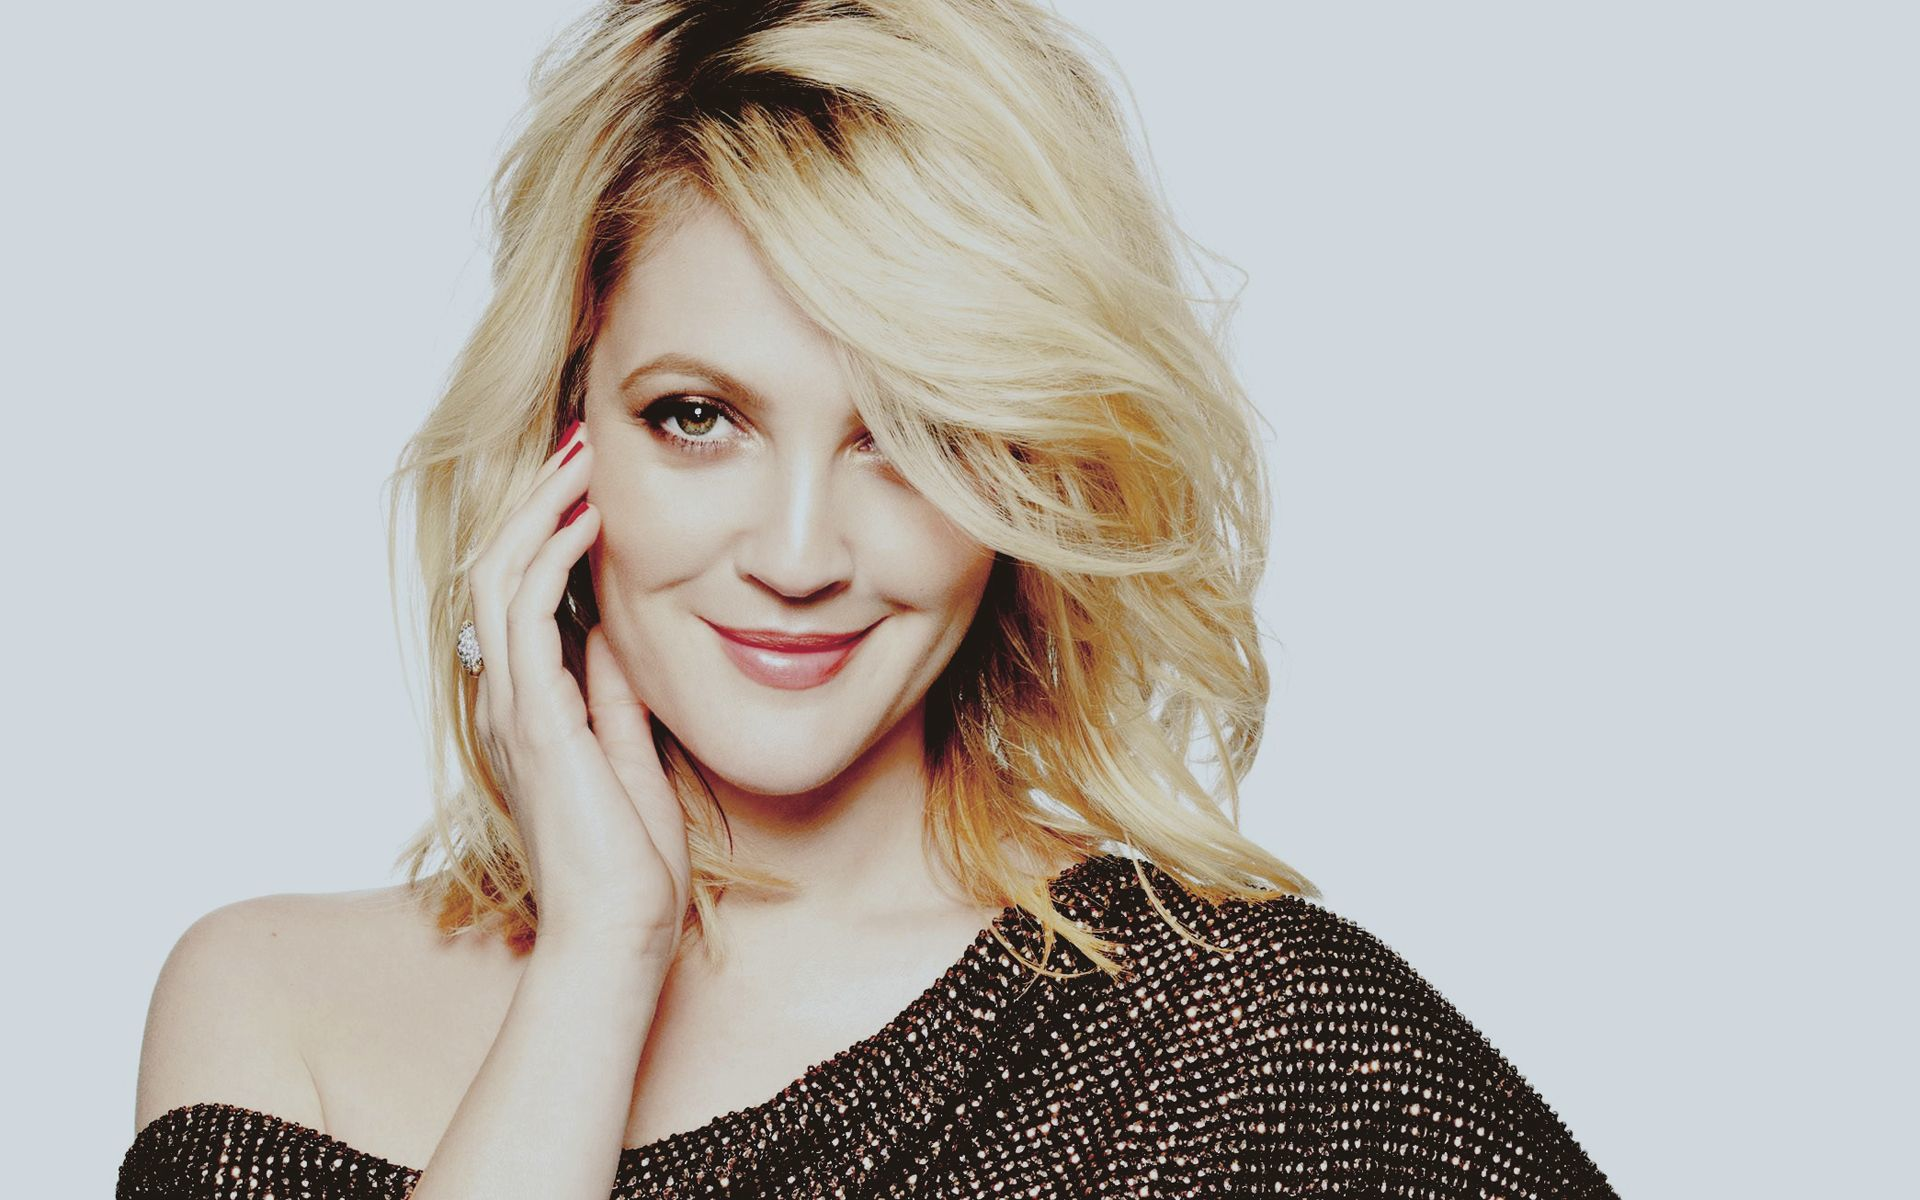 Drew Barrymore Images